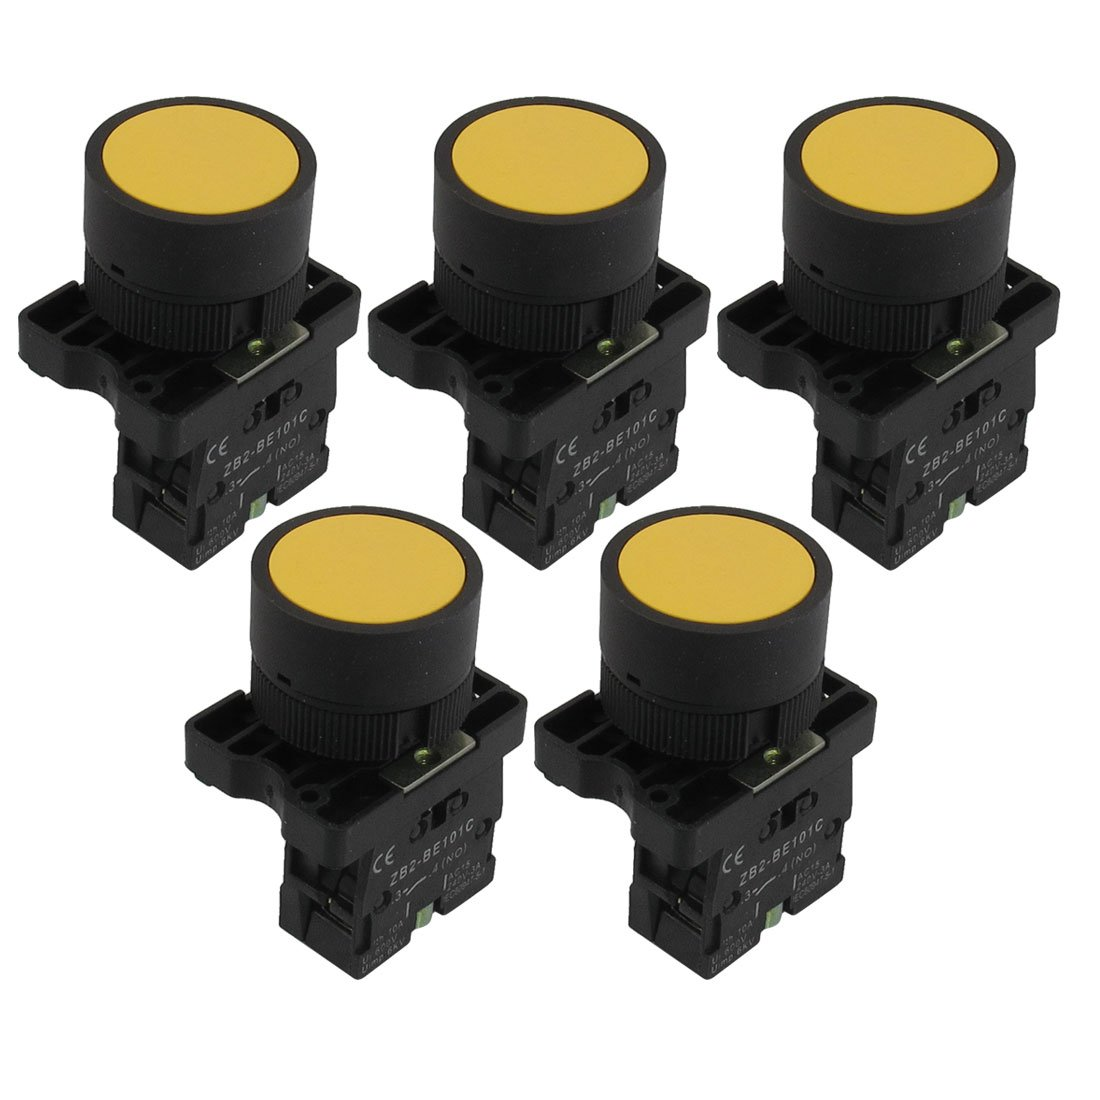 uxcell 5pcs 1 NO N/O Sign Momentary Push Button Switch, 22 mm, 600V, 10A, ZB2-EA51, Yellow